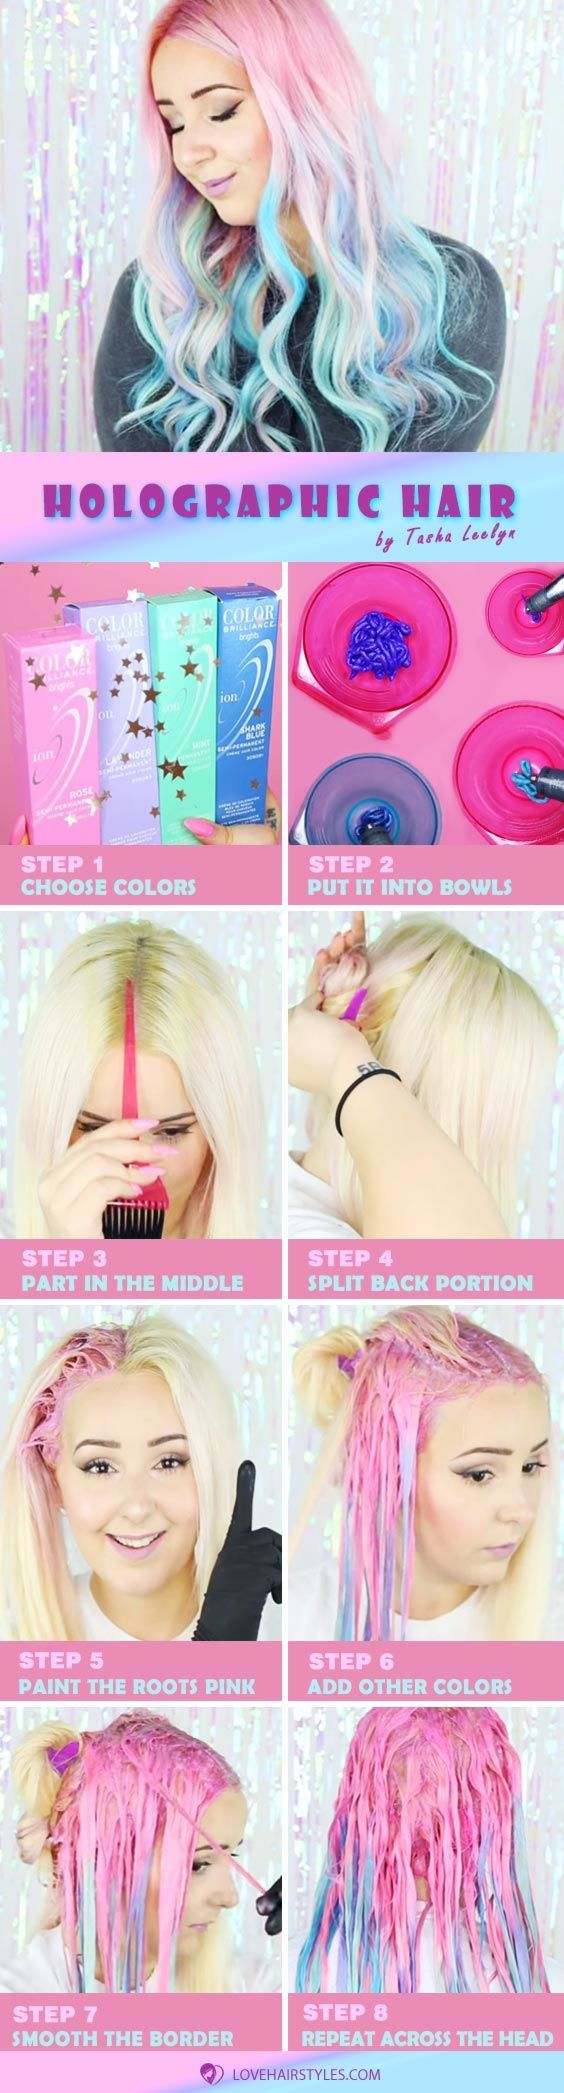 How To Get Holographic Hair: A Little Magic Tutorial #hairtutorial #holographich...